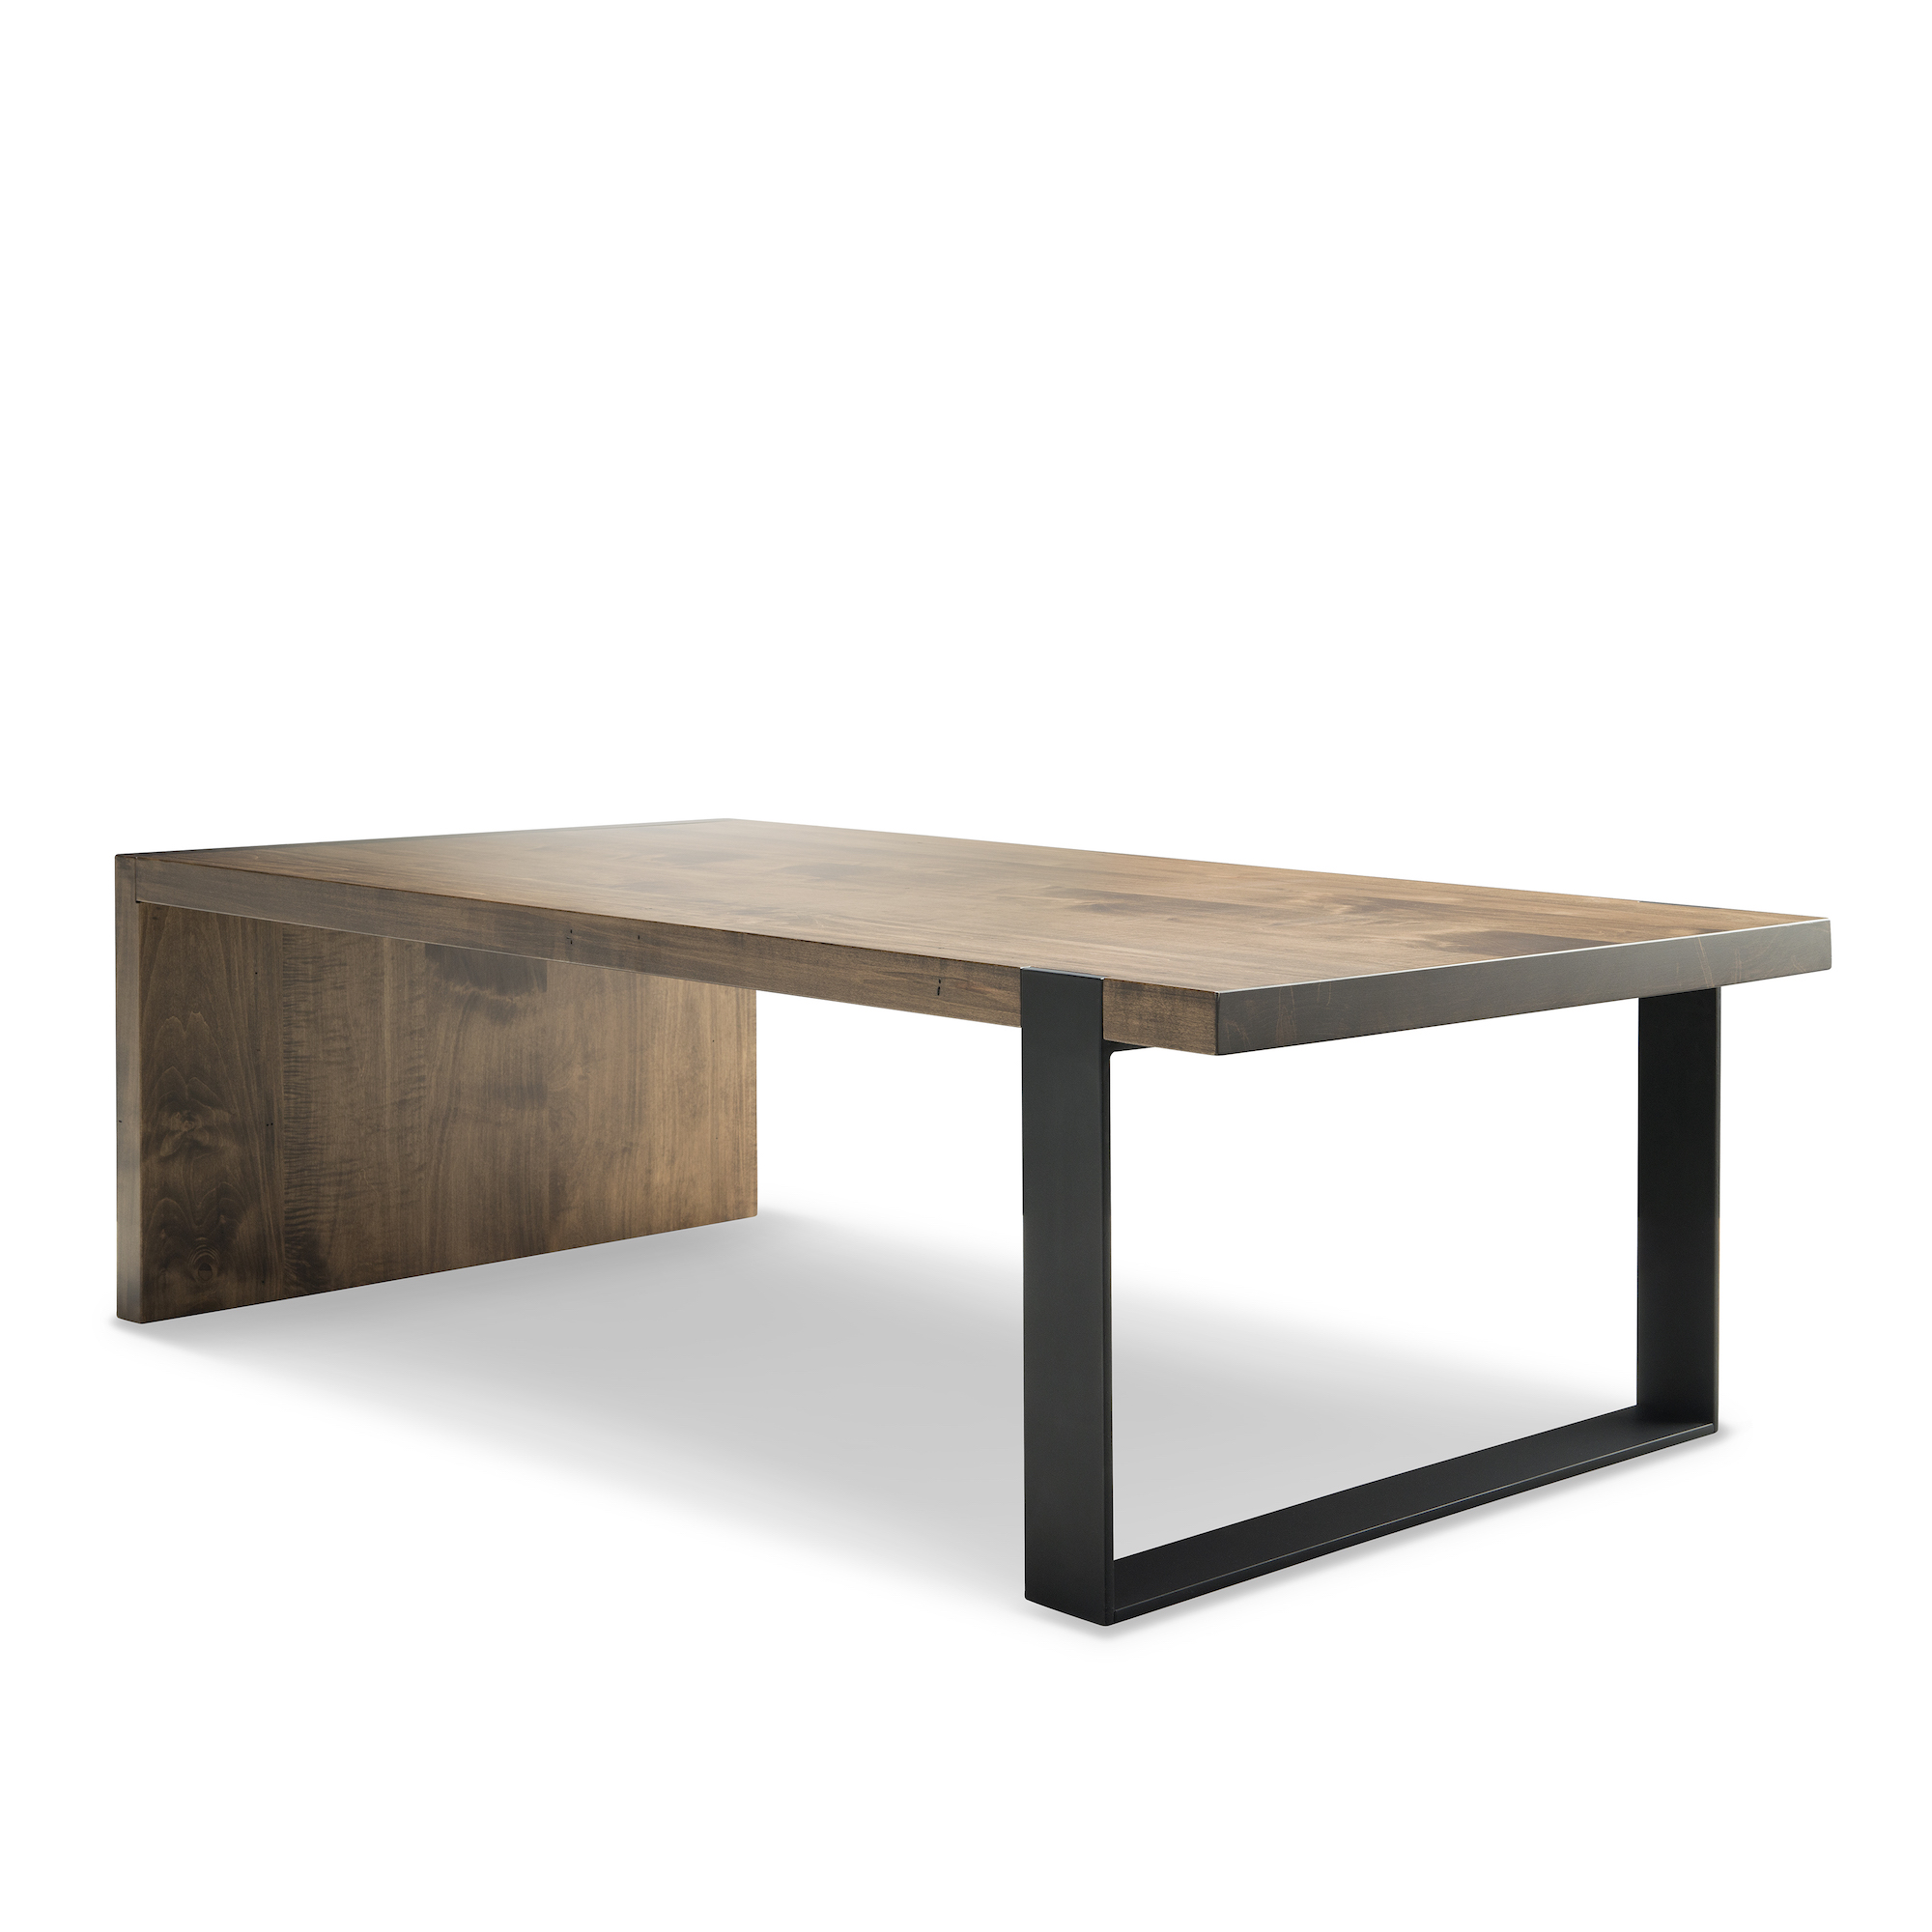 Parkdale_Coffee_Table_Angled-2-1.jpg